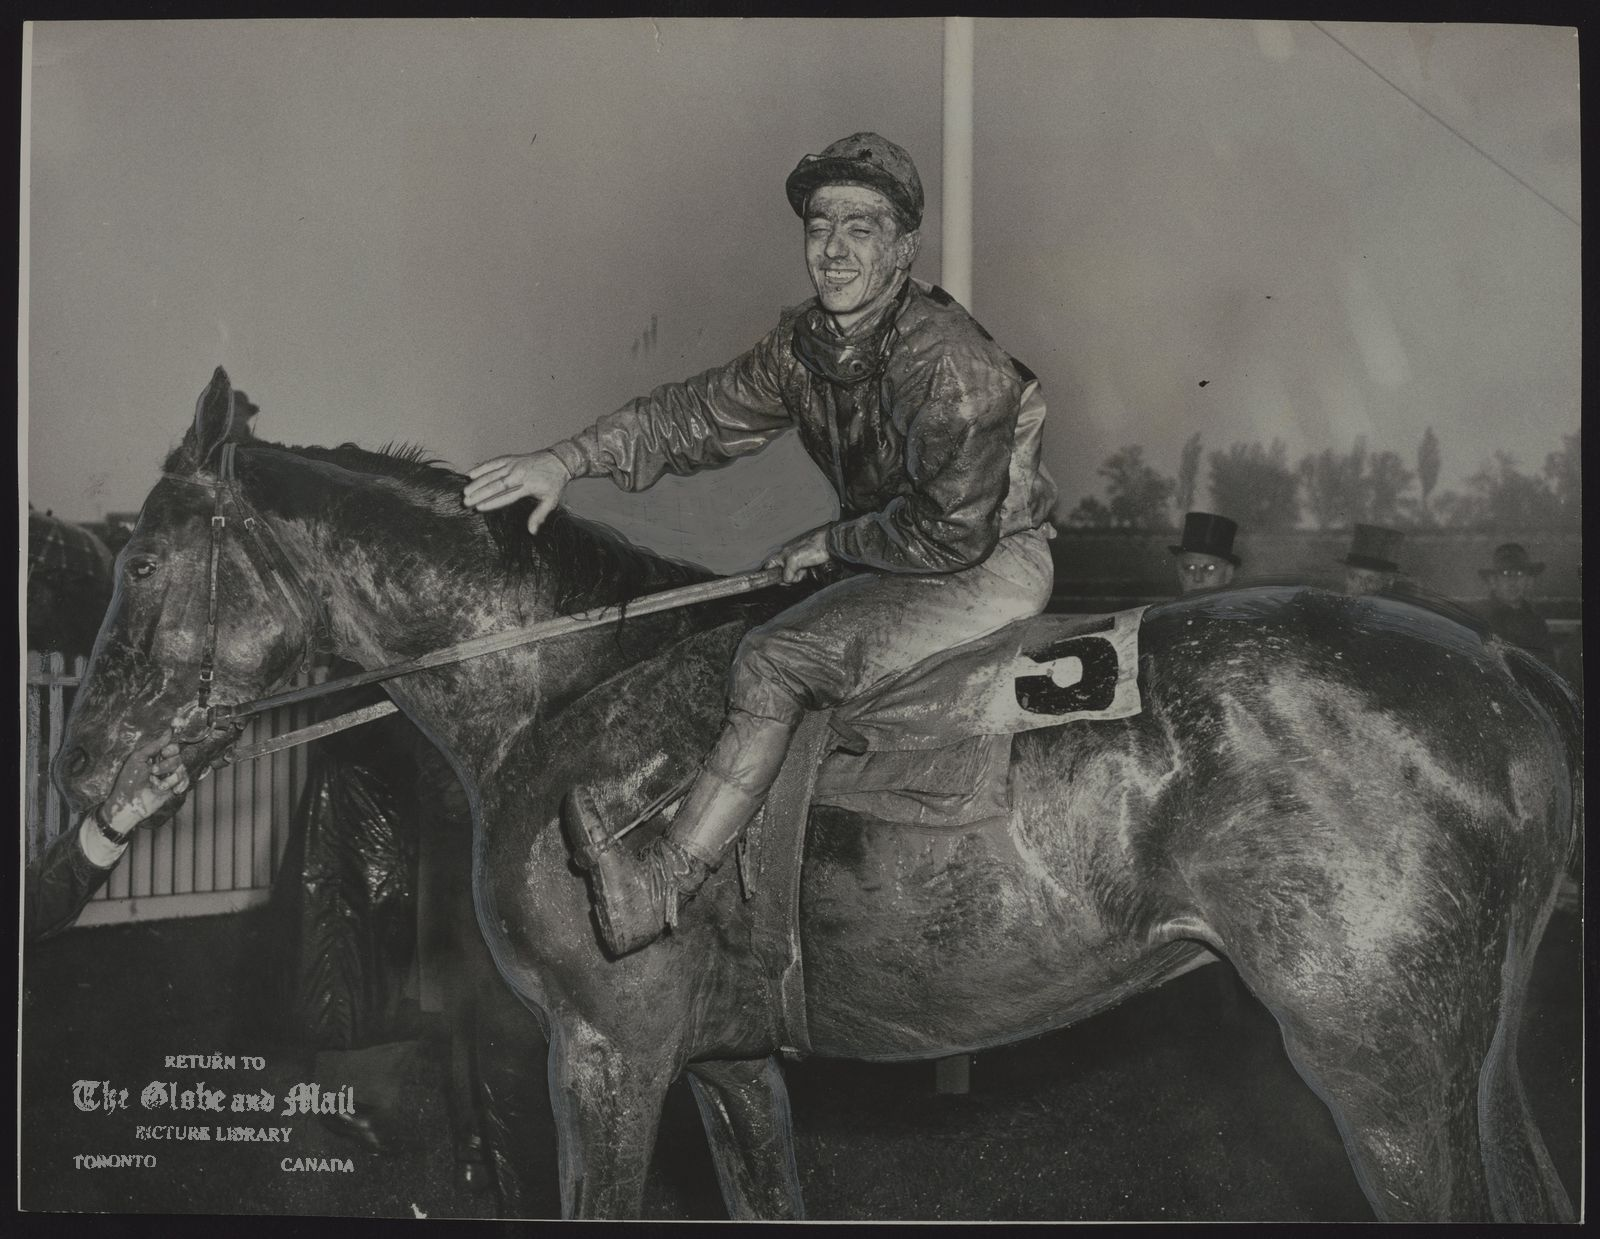 EPIGRAM (Racehorse) Tired pair were Epigram, Queen's Plate winner at the Woodbine, and Jockey Gil Robillard. Epigram came from a long way behind to win. Jockey and horse got a mud bathe from the field as they pounded over the wettest track in years.